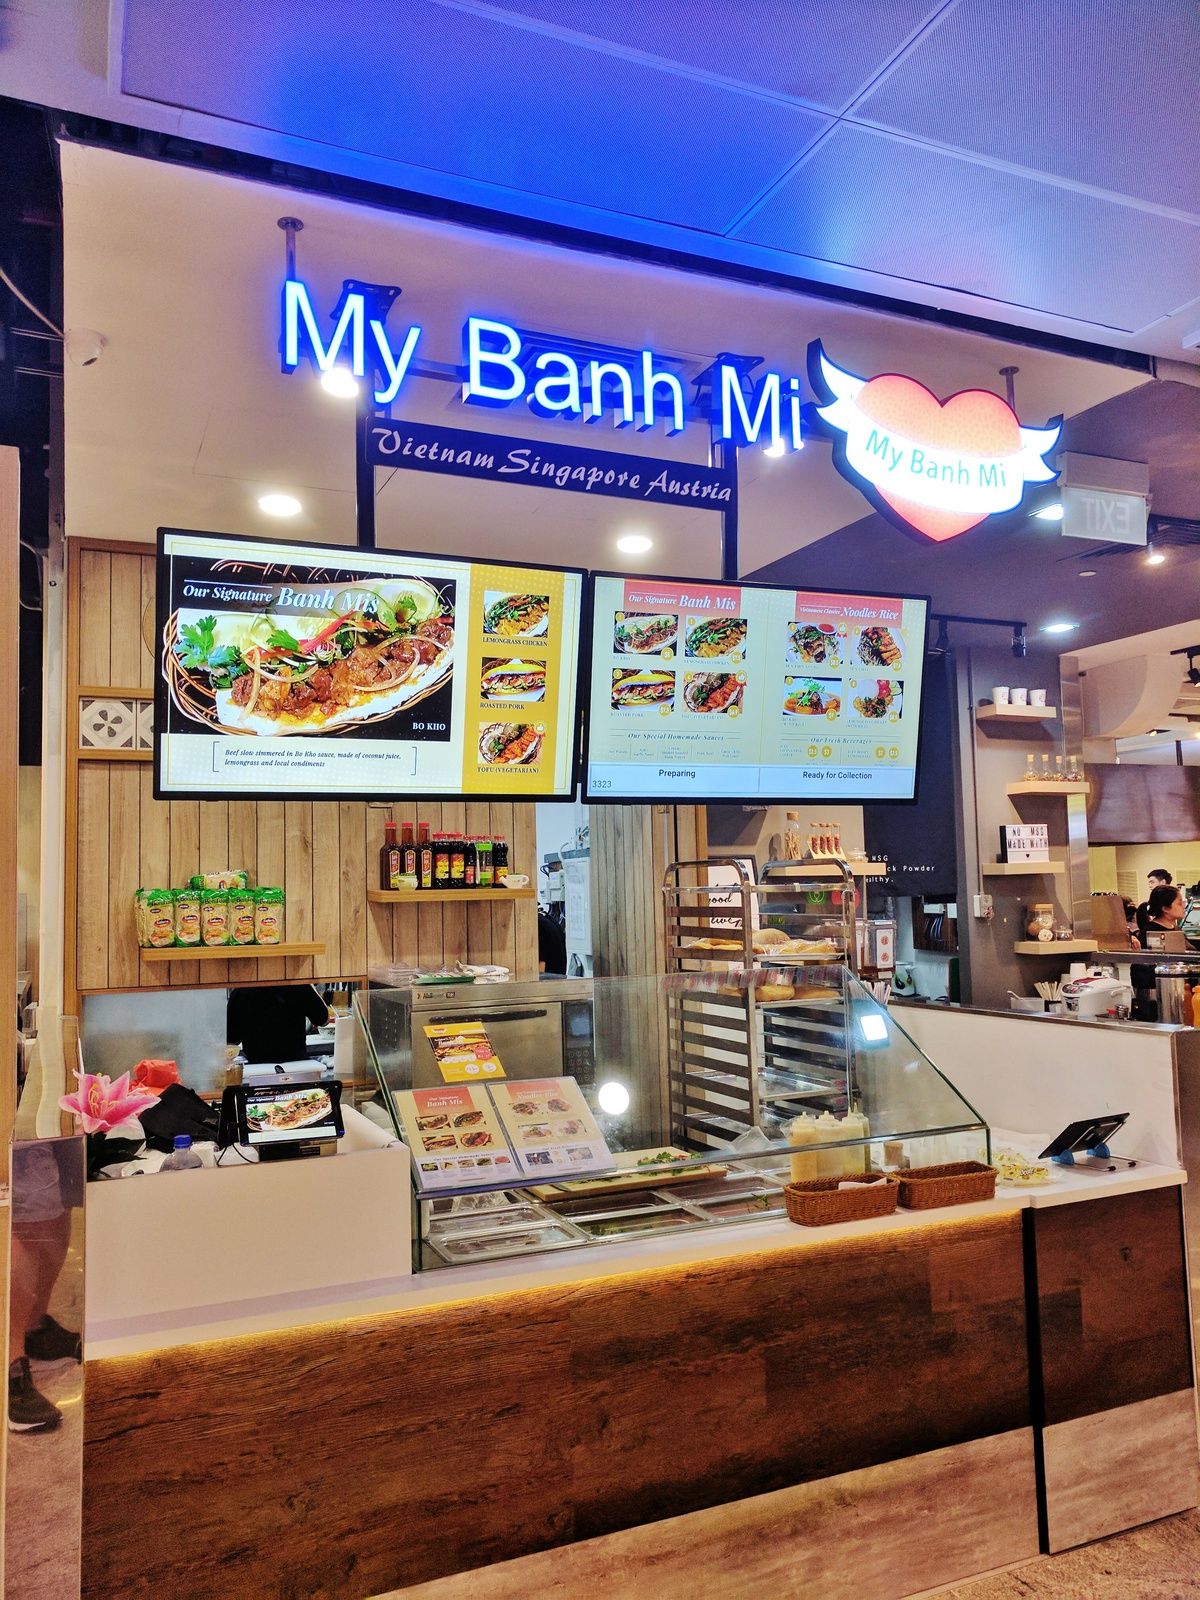 My Banh Mi Singapore - Bringing you a taste of Saigon | Spring Tomorrow